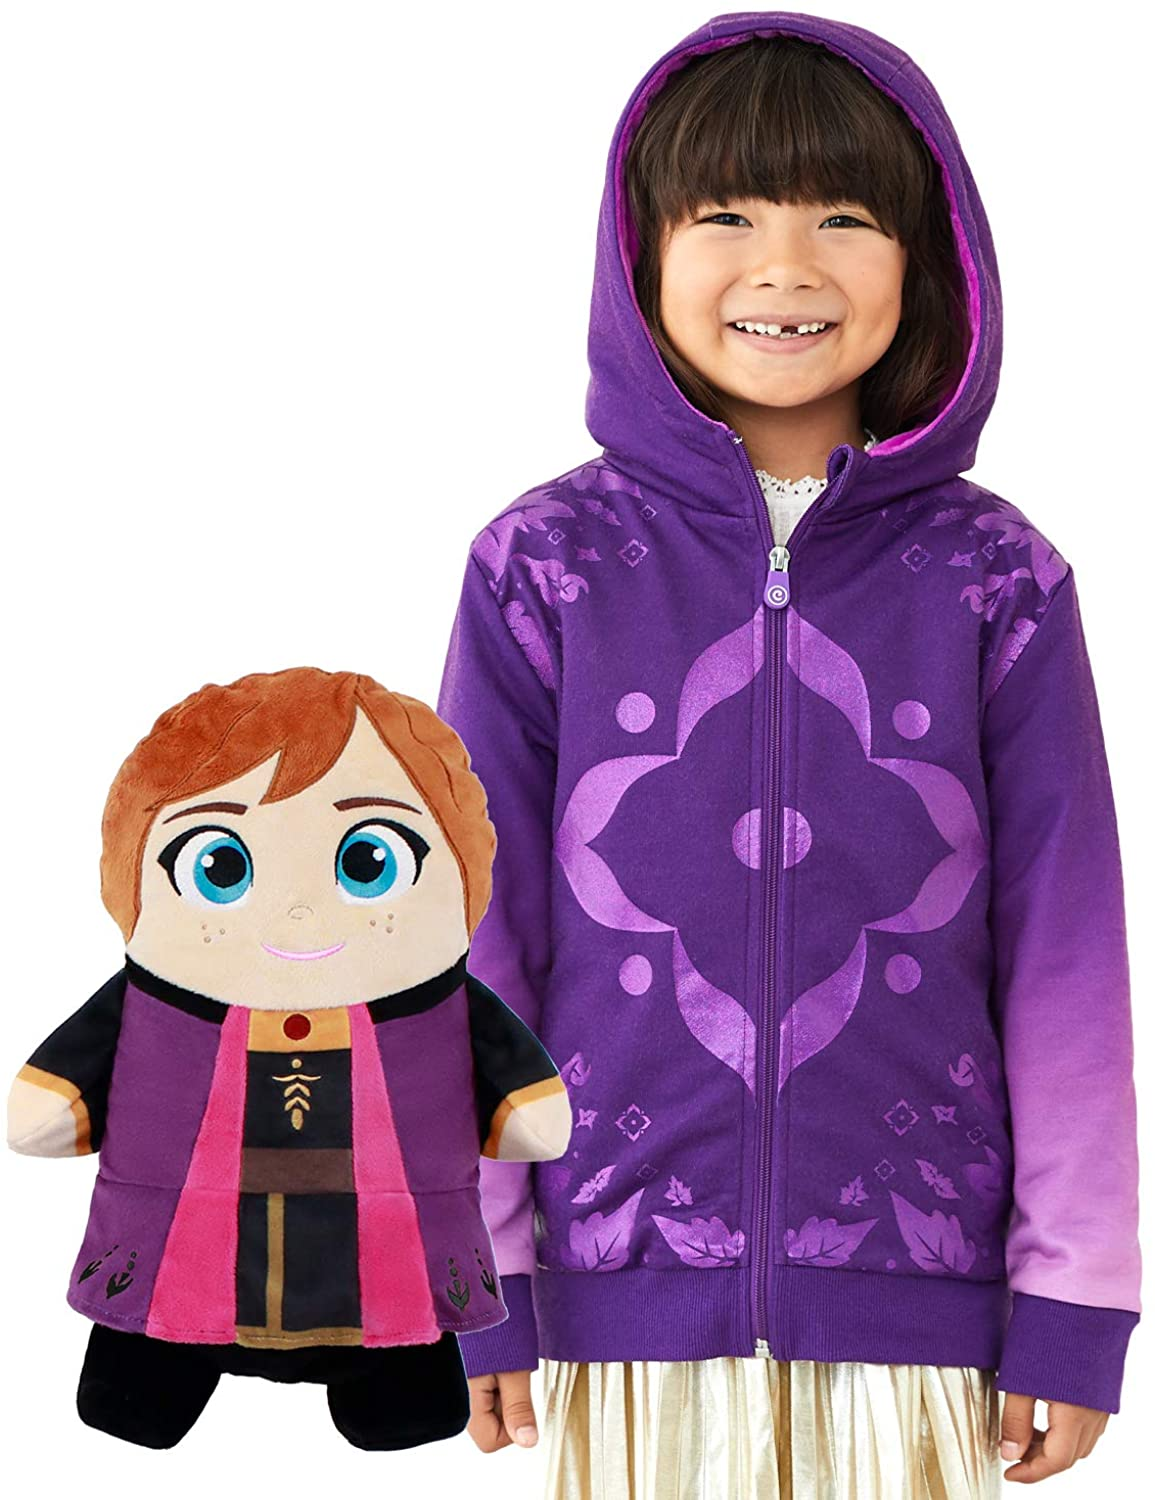 Anna Hoodie and Soft Plushie For Kids